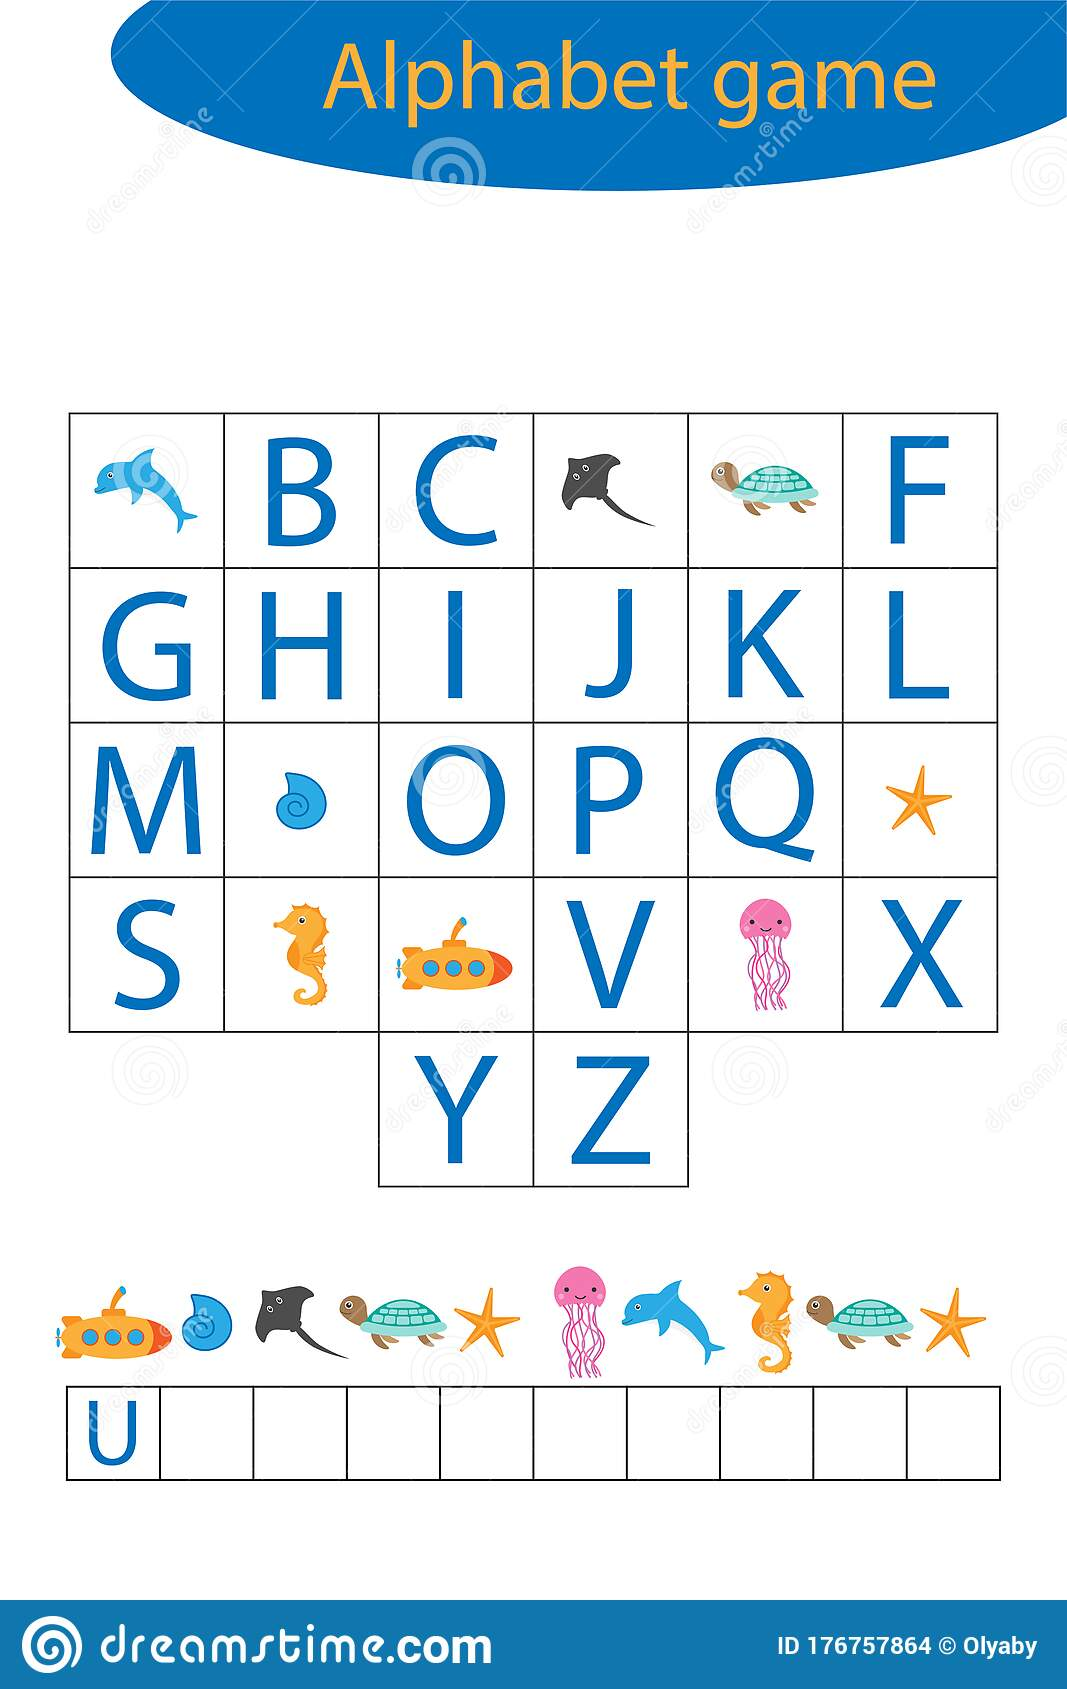 Underwater Alphabet Game For Children Make A Word